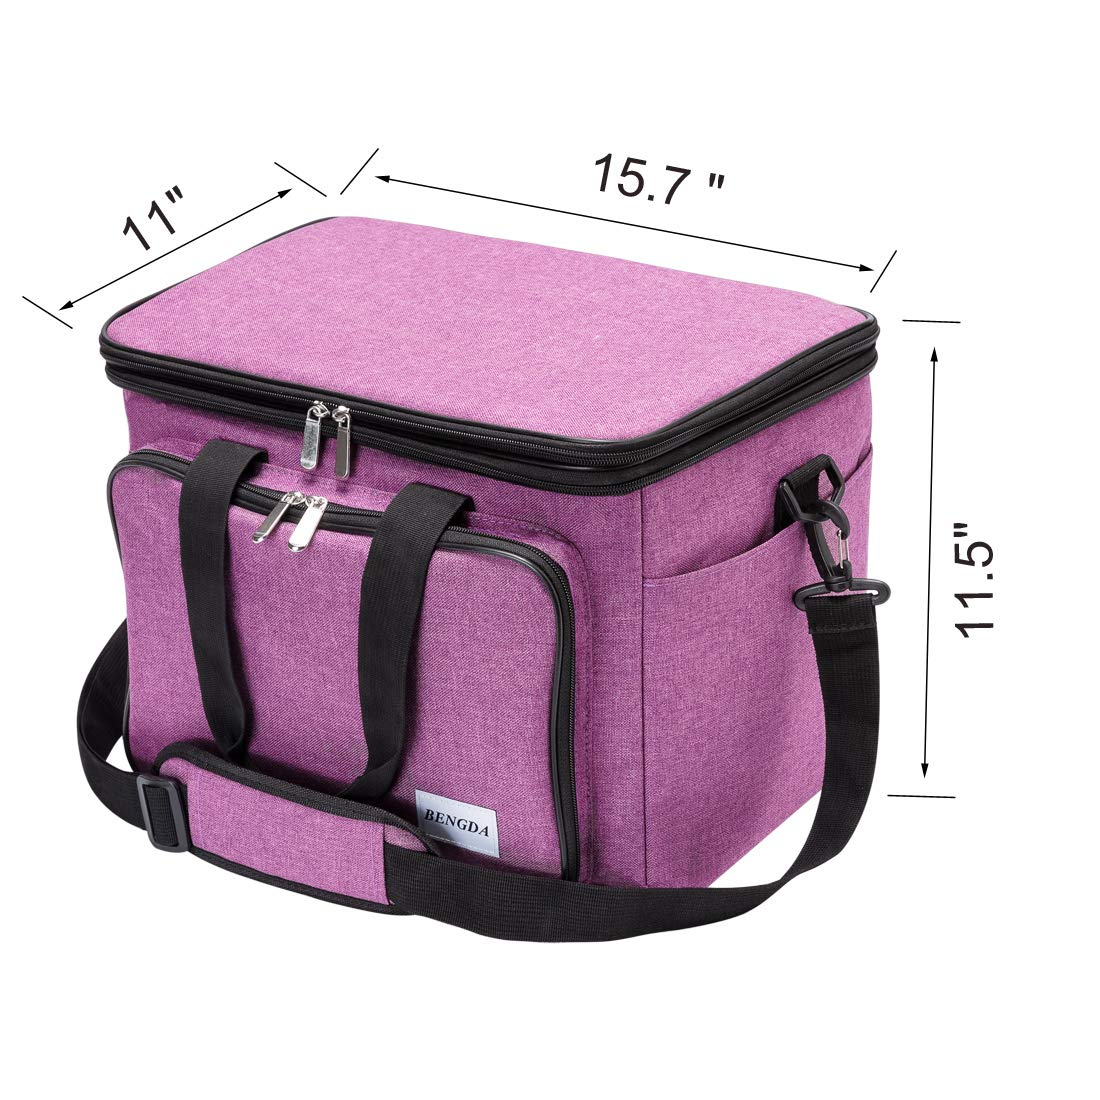 BENGDA Knitting Bags and Totes,Crochet Yarn Organizer with Inner Divider for Knitting Needles,Project and Supplies,Easy to Carry, High Capacity (Purple with Cover) by BENGDA (Image #2)